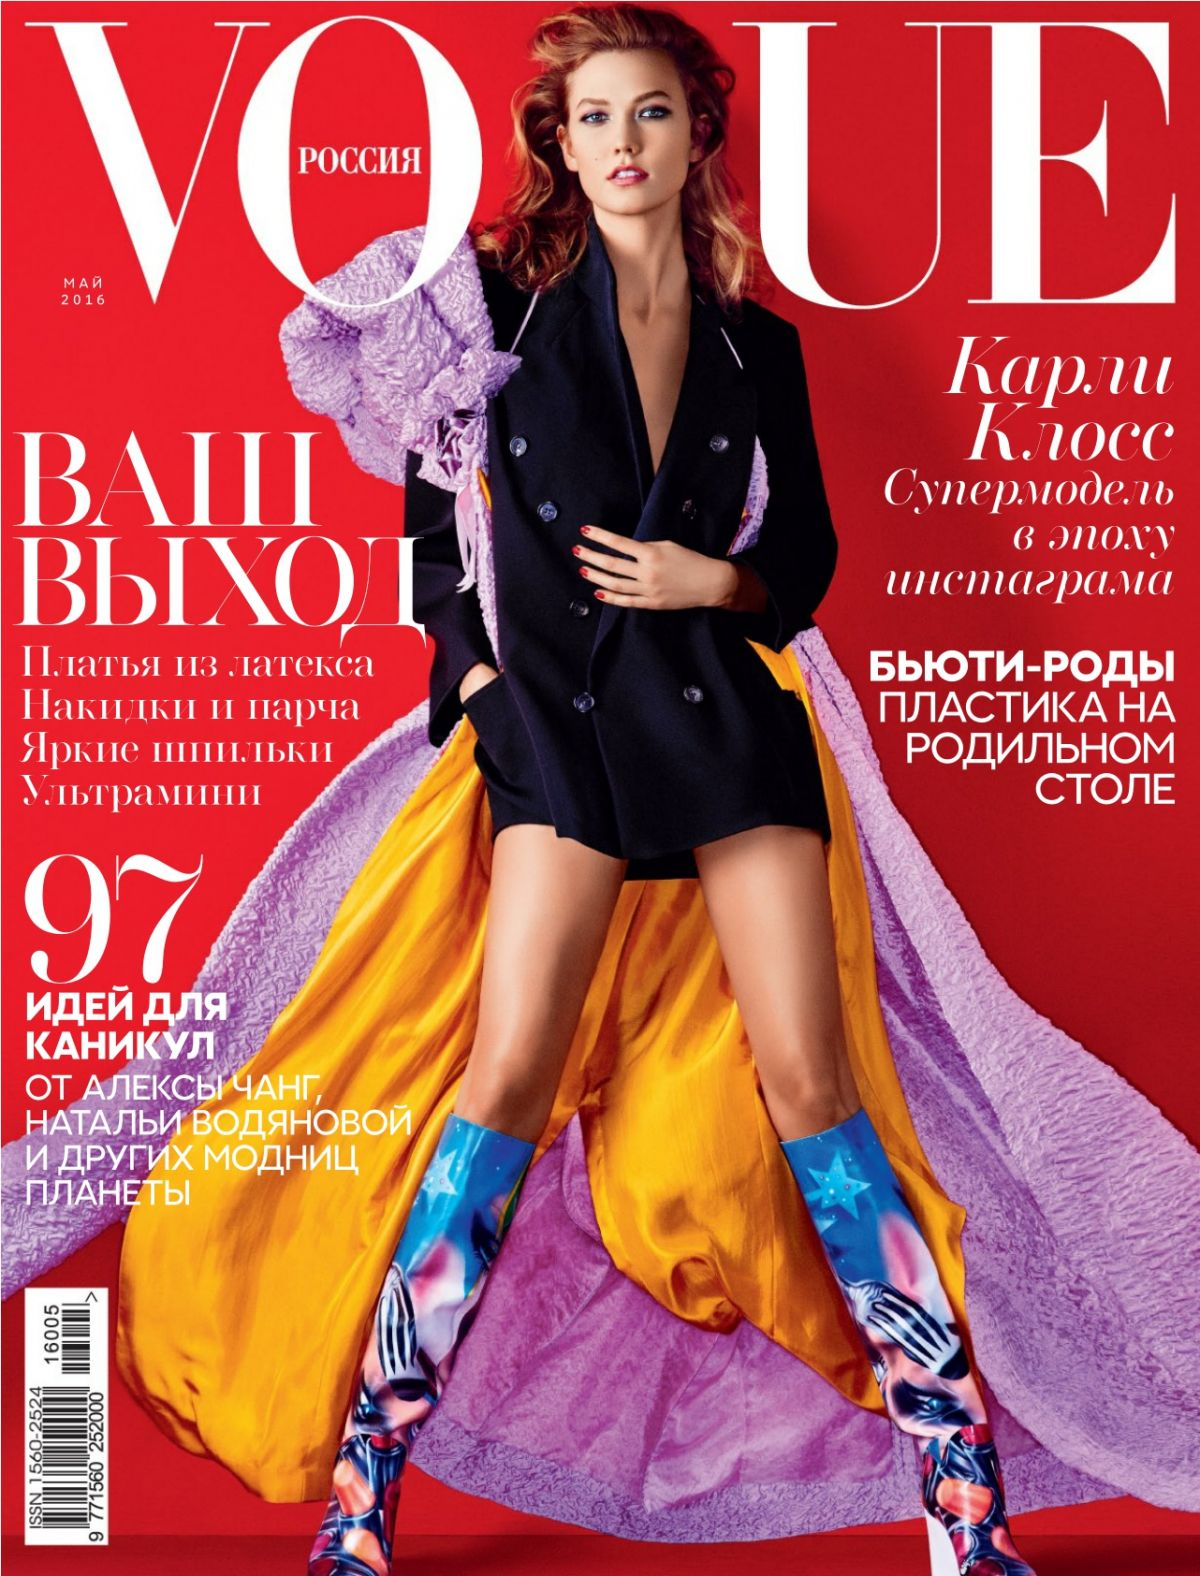 KARLIE KLOSS in Vogue Magazine, Russia May 2016 Issue